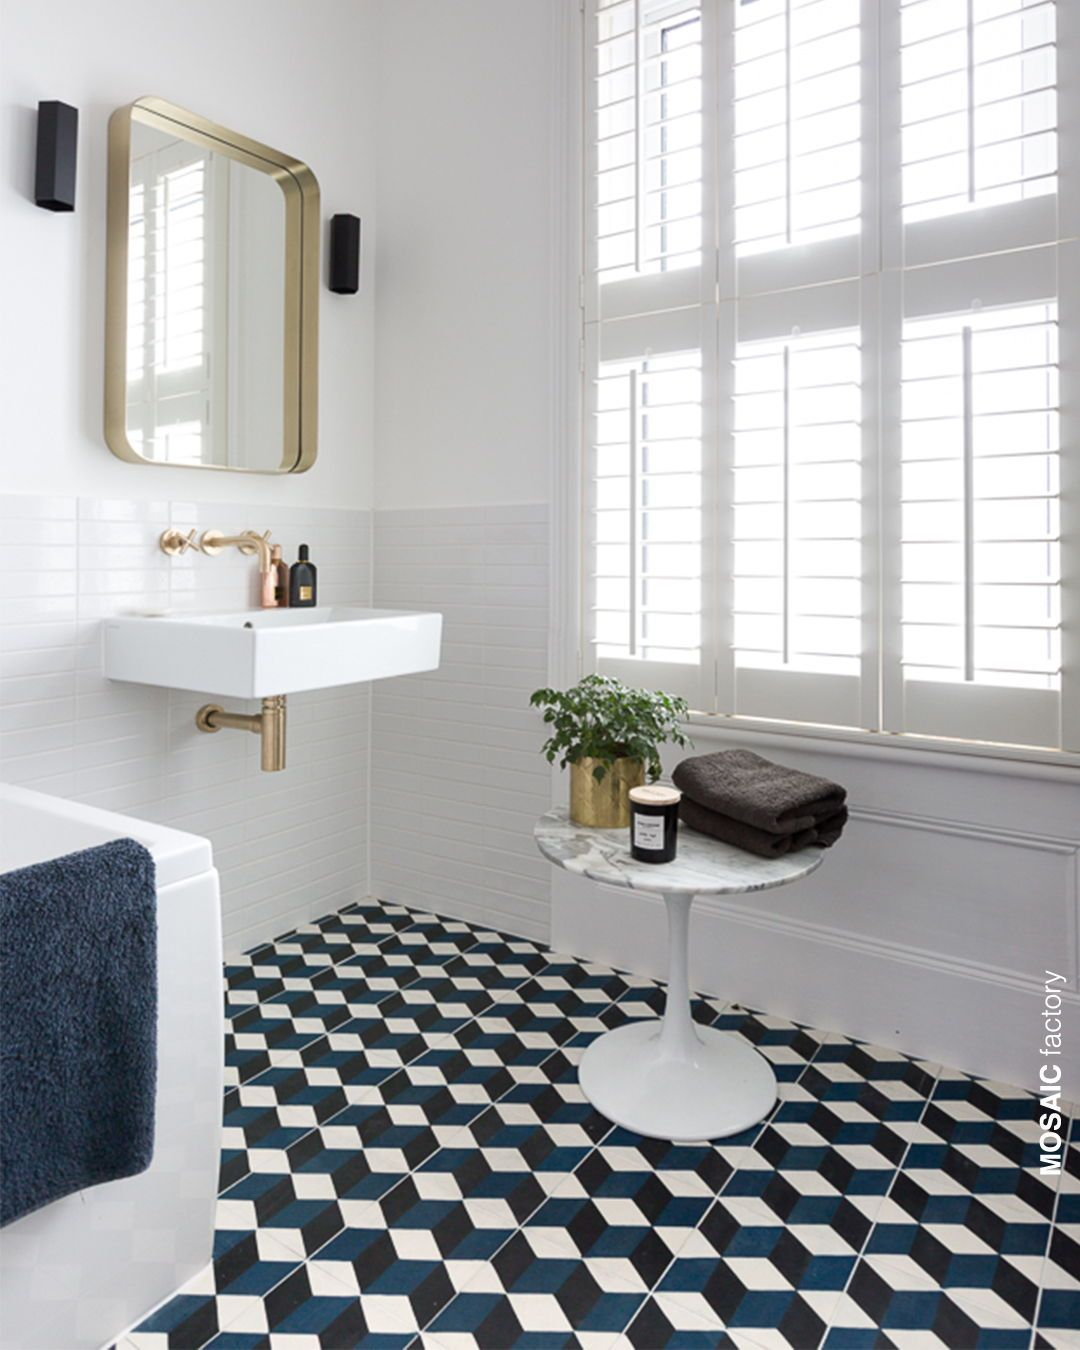 All White Bathroom With Contrasting Patterned Floor Tiles In Blue